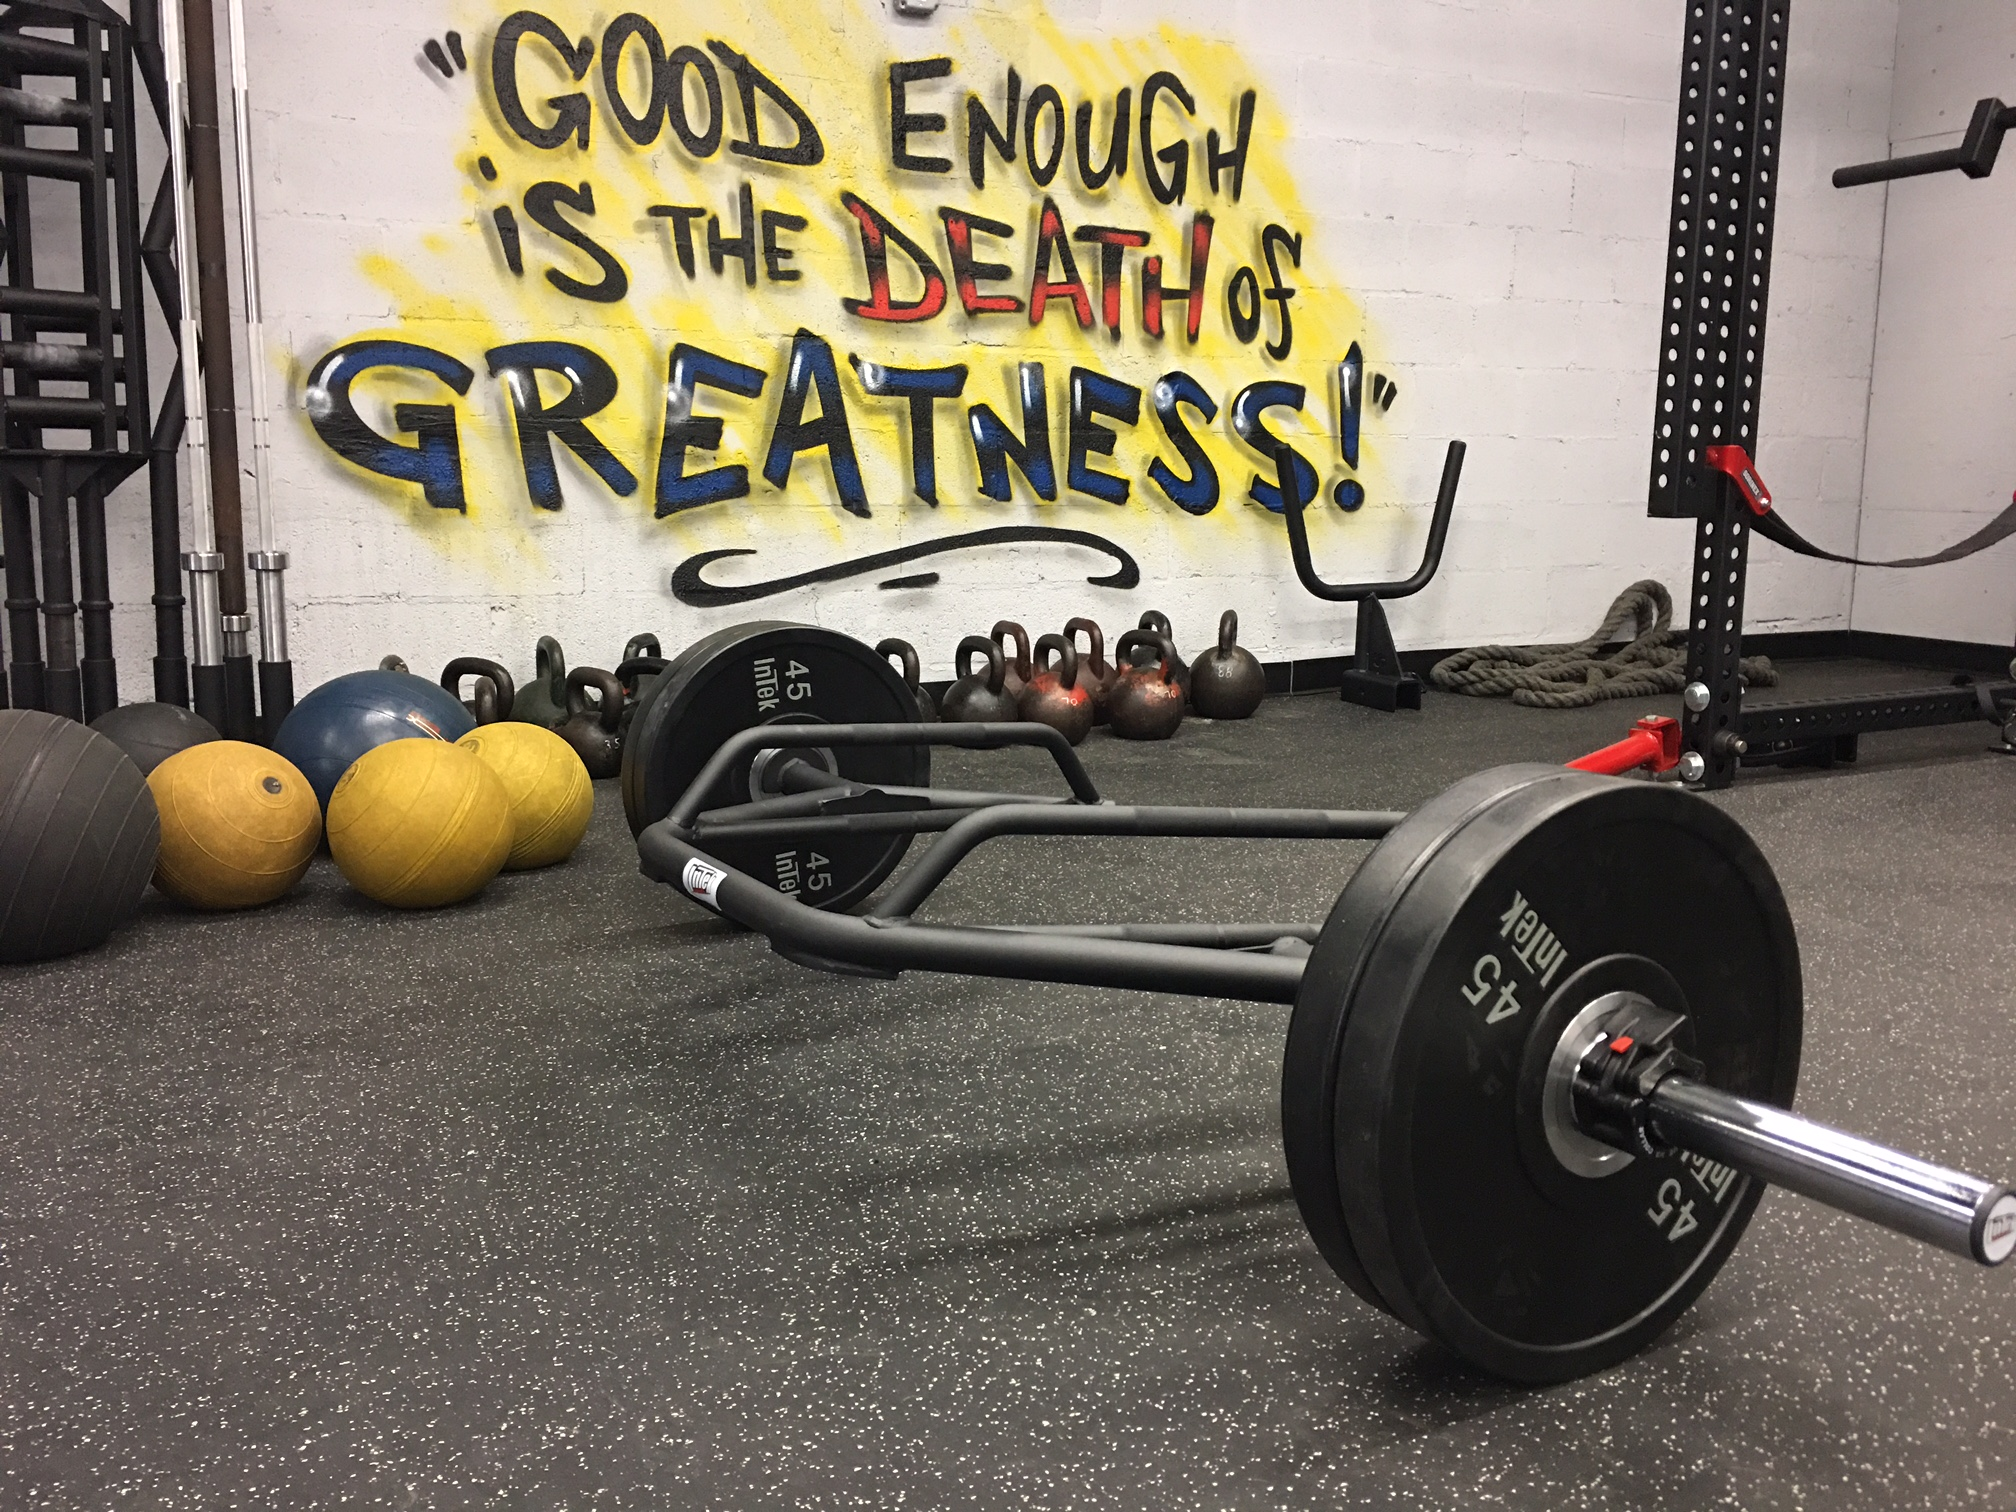 goodenough-death-greatness